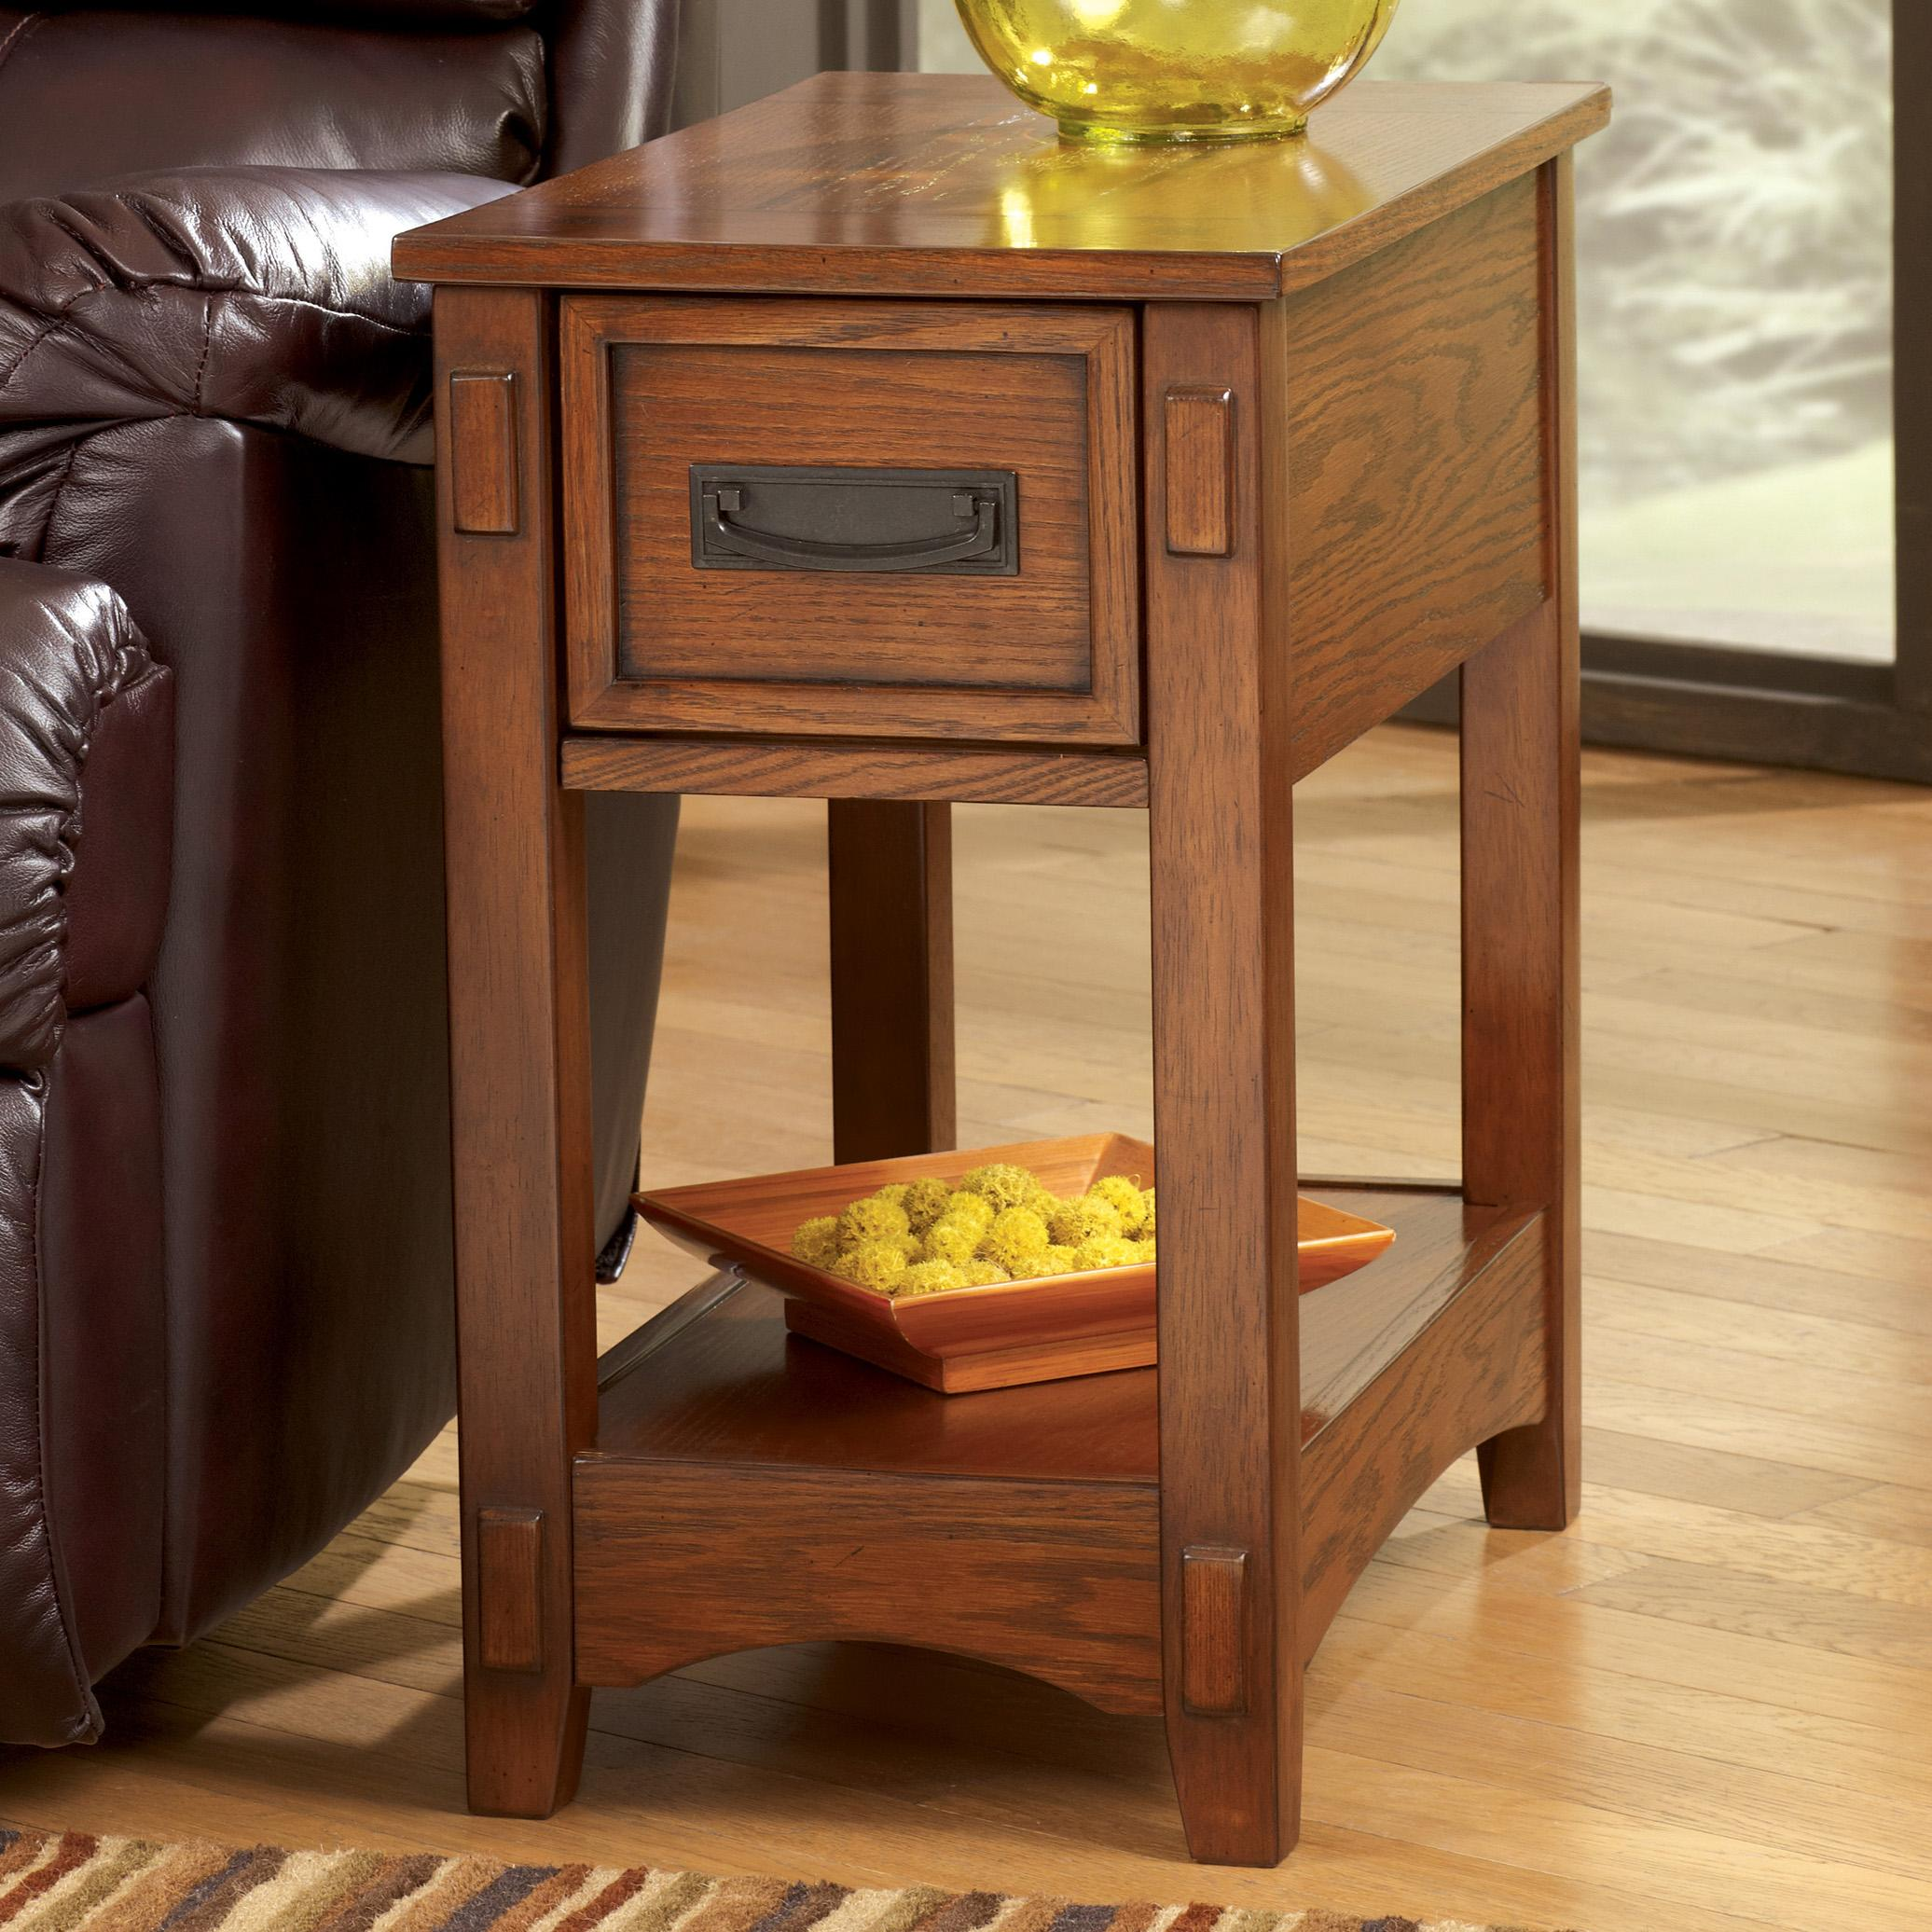 Signature Design by Ashley Breegin Chairside End Table - Item Number: T007-319